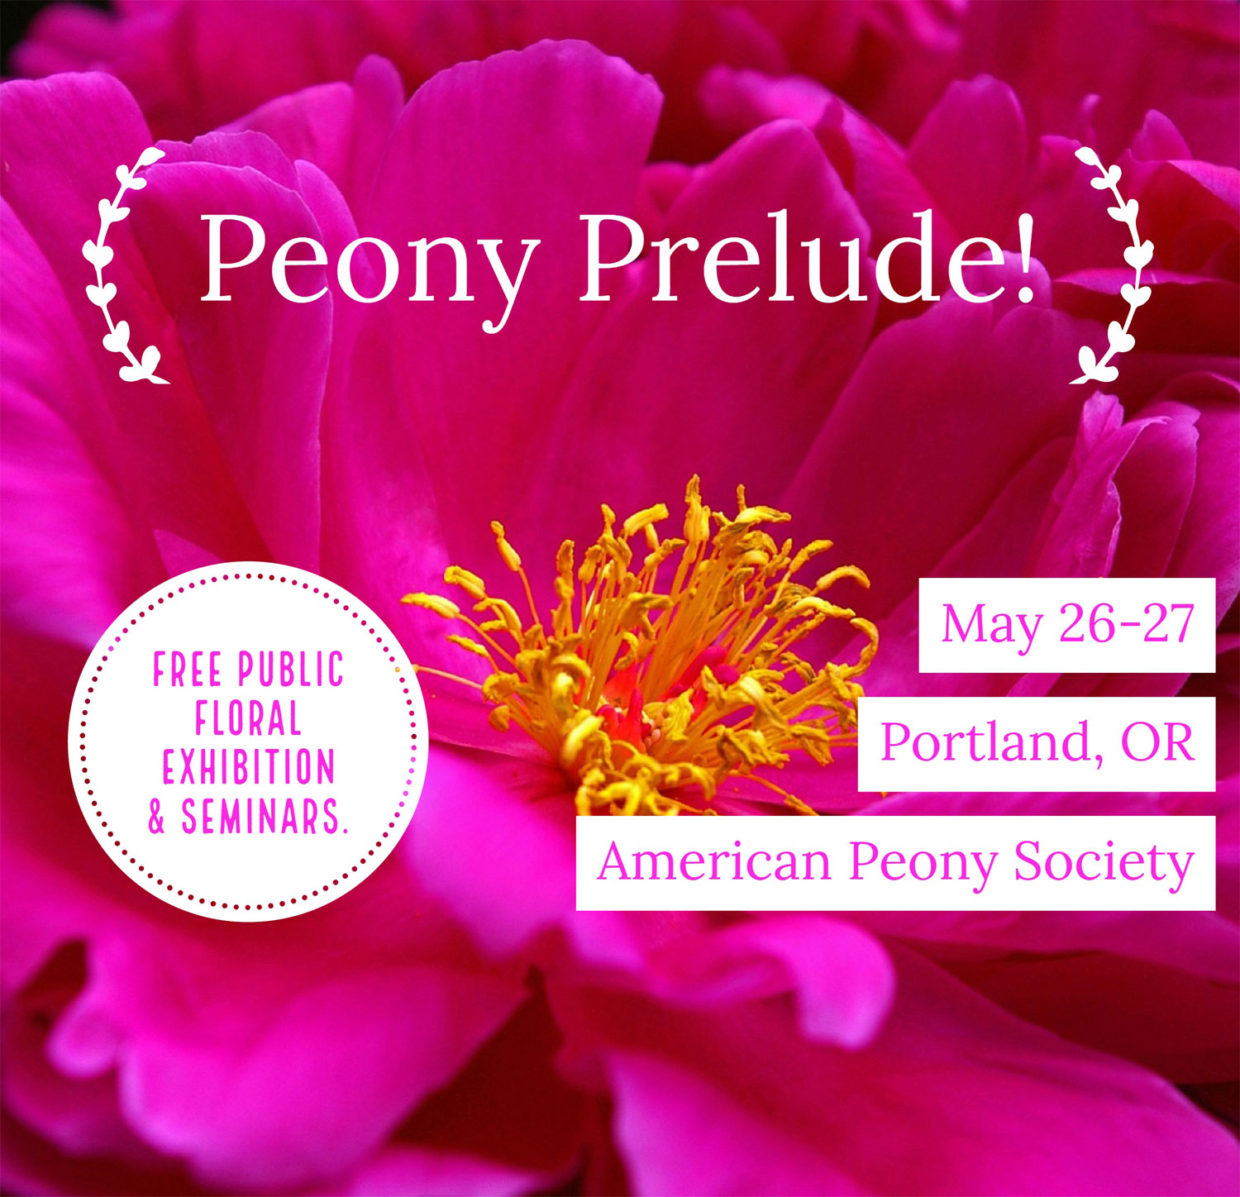 """Peony Prelude!"" a free public floral exhibition and educational seminars"